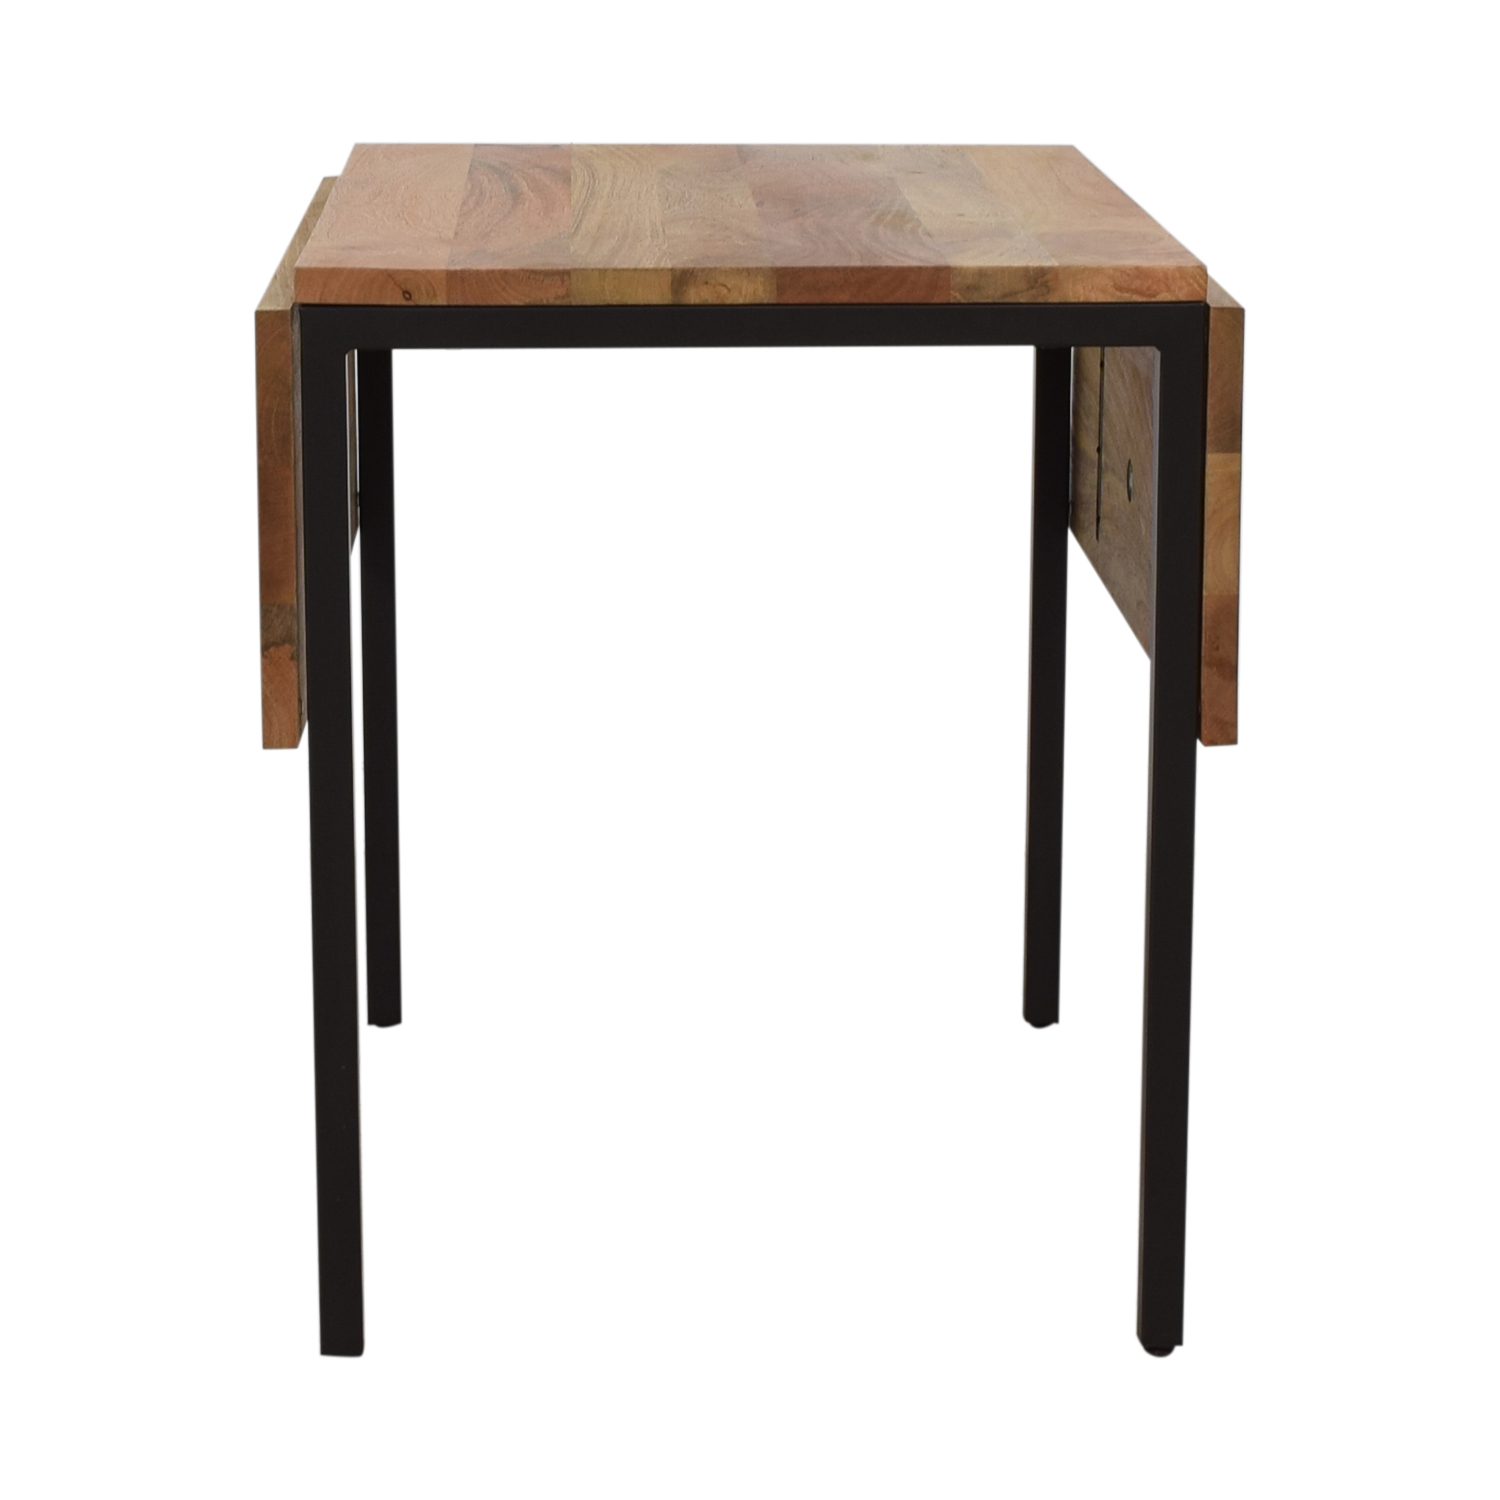 West Elm West Elm Box Frame Drop Leaf Expandable Table for sale